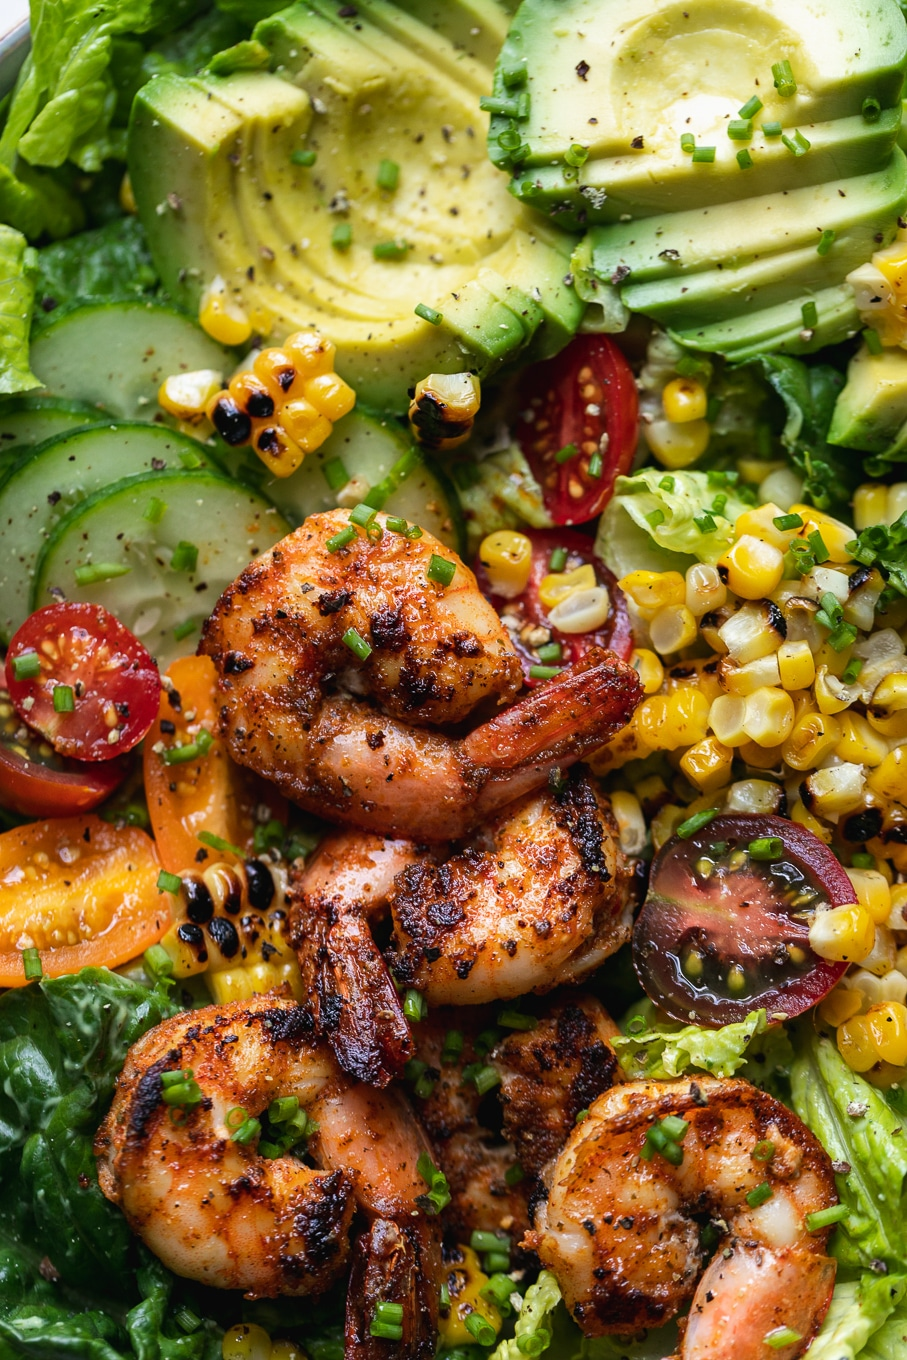 Super close up shot of shrimp, tomatoes, corn, avocado, and cucumbers